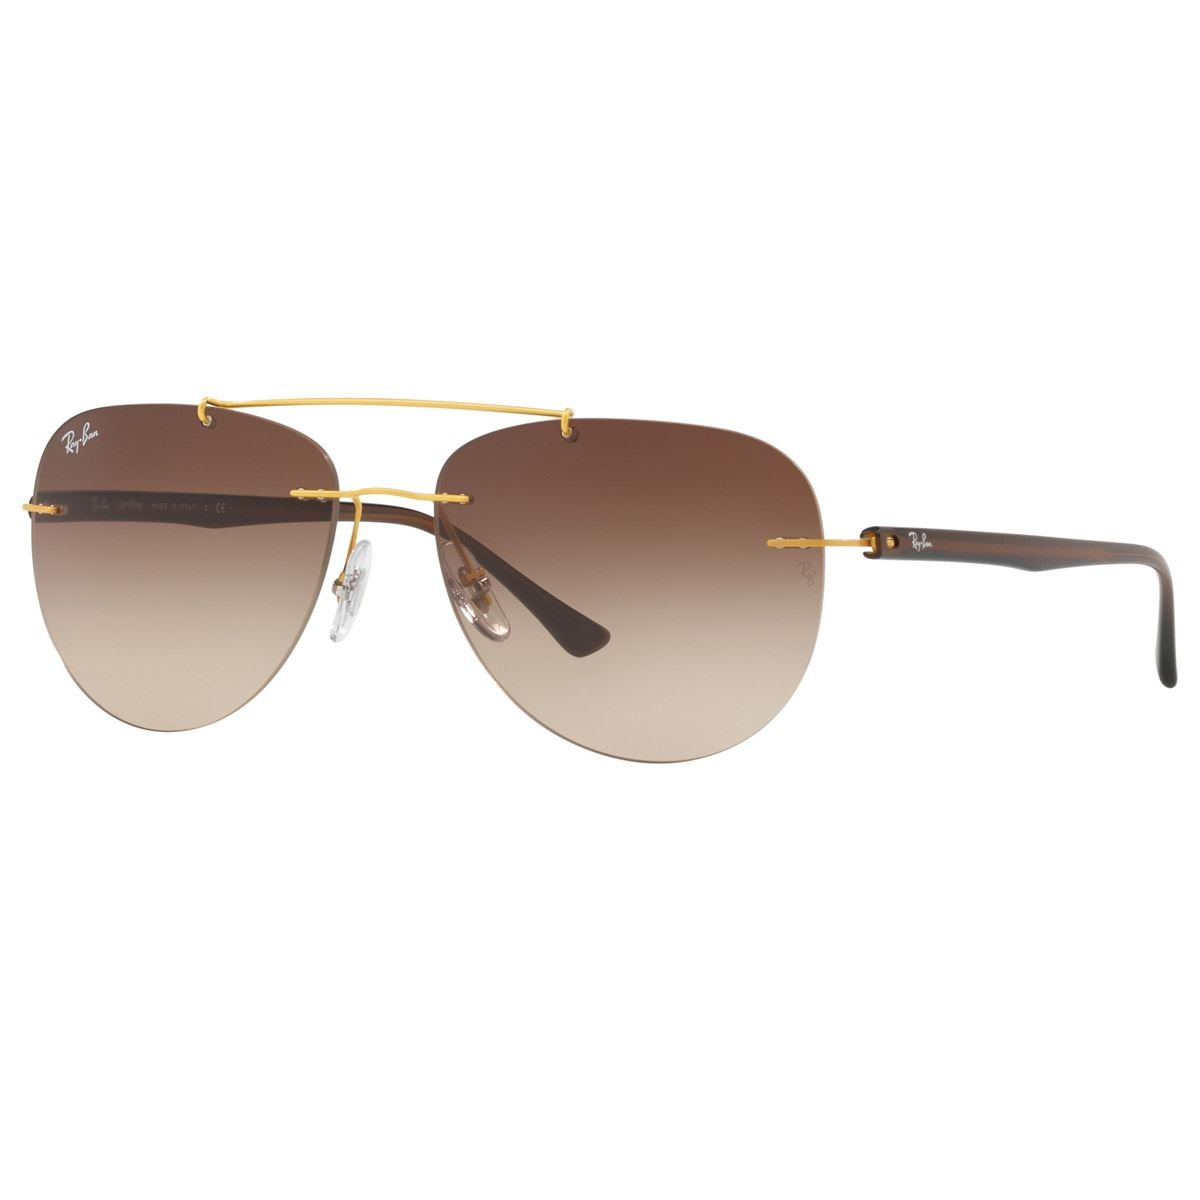 b1d85a363b096 Ray ban marrón degradado armazón oro - Sanborns